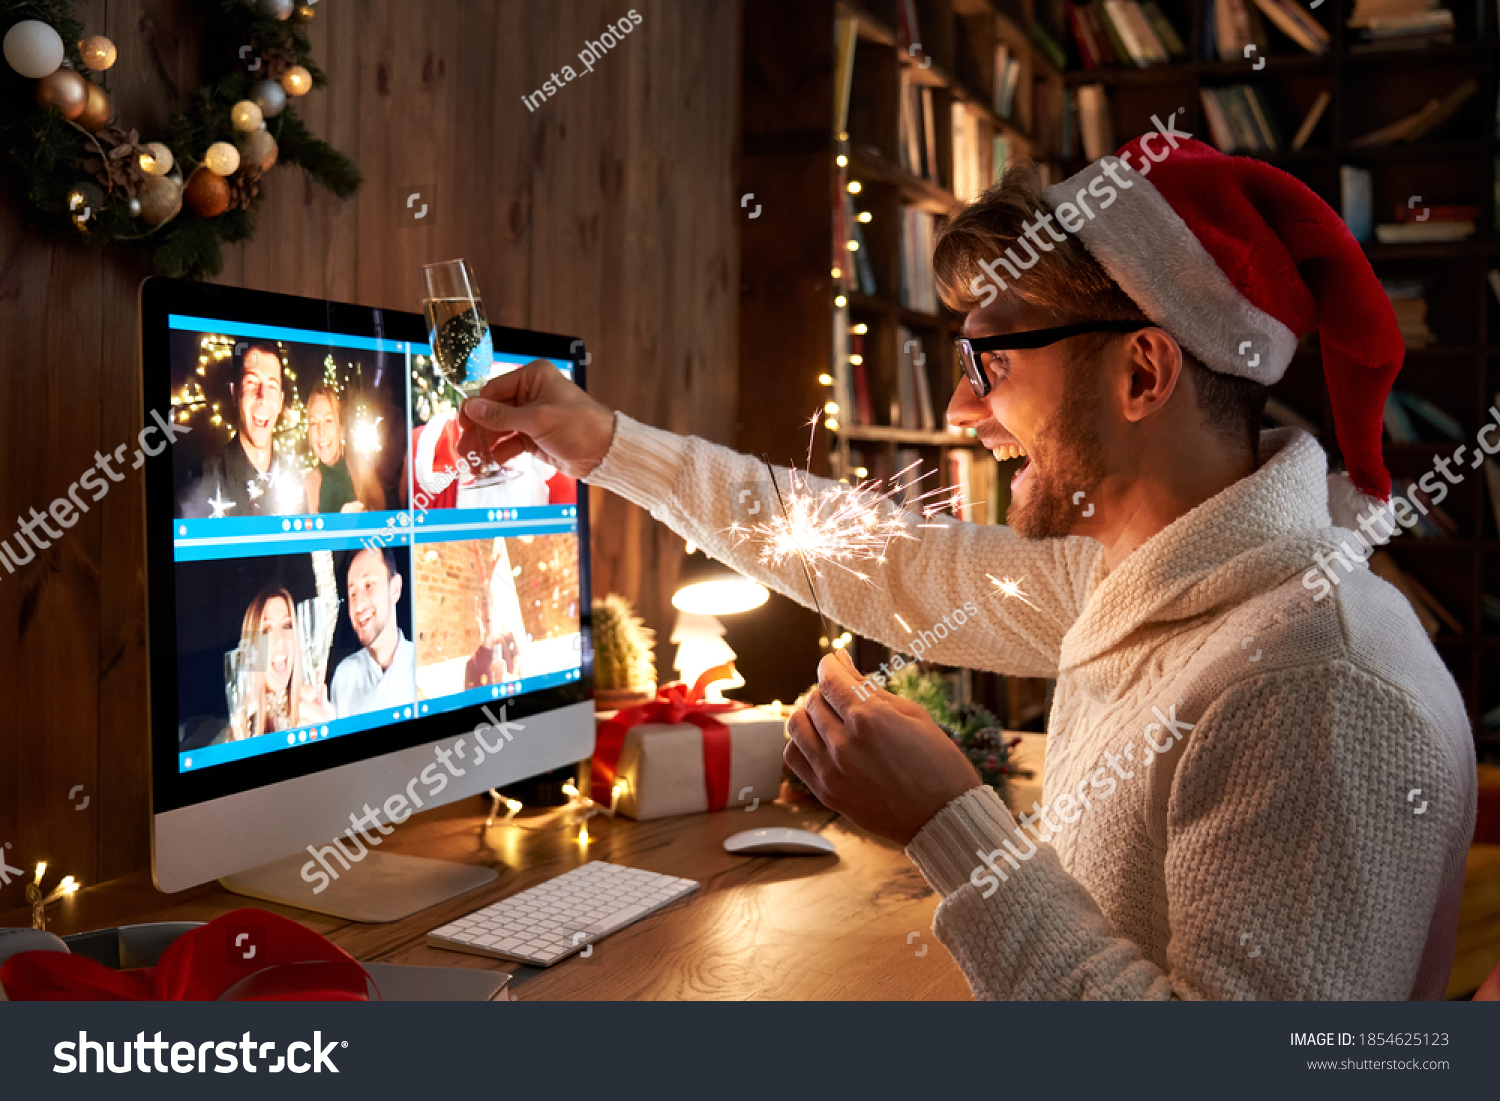 Young man wearing Christmas hat drinking champagne holding sparkler talking to friends on virtual zoom video call celebrate Happy New Year party in distance online conference chat on computer at home. #1854625123